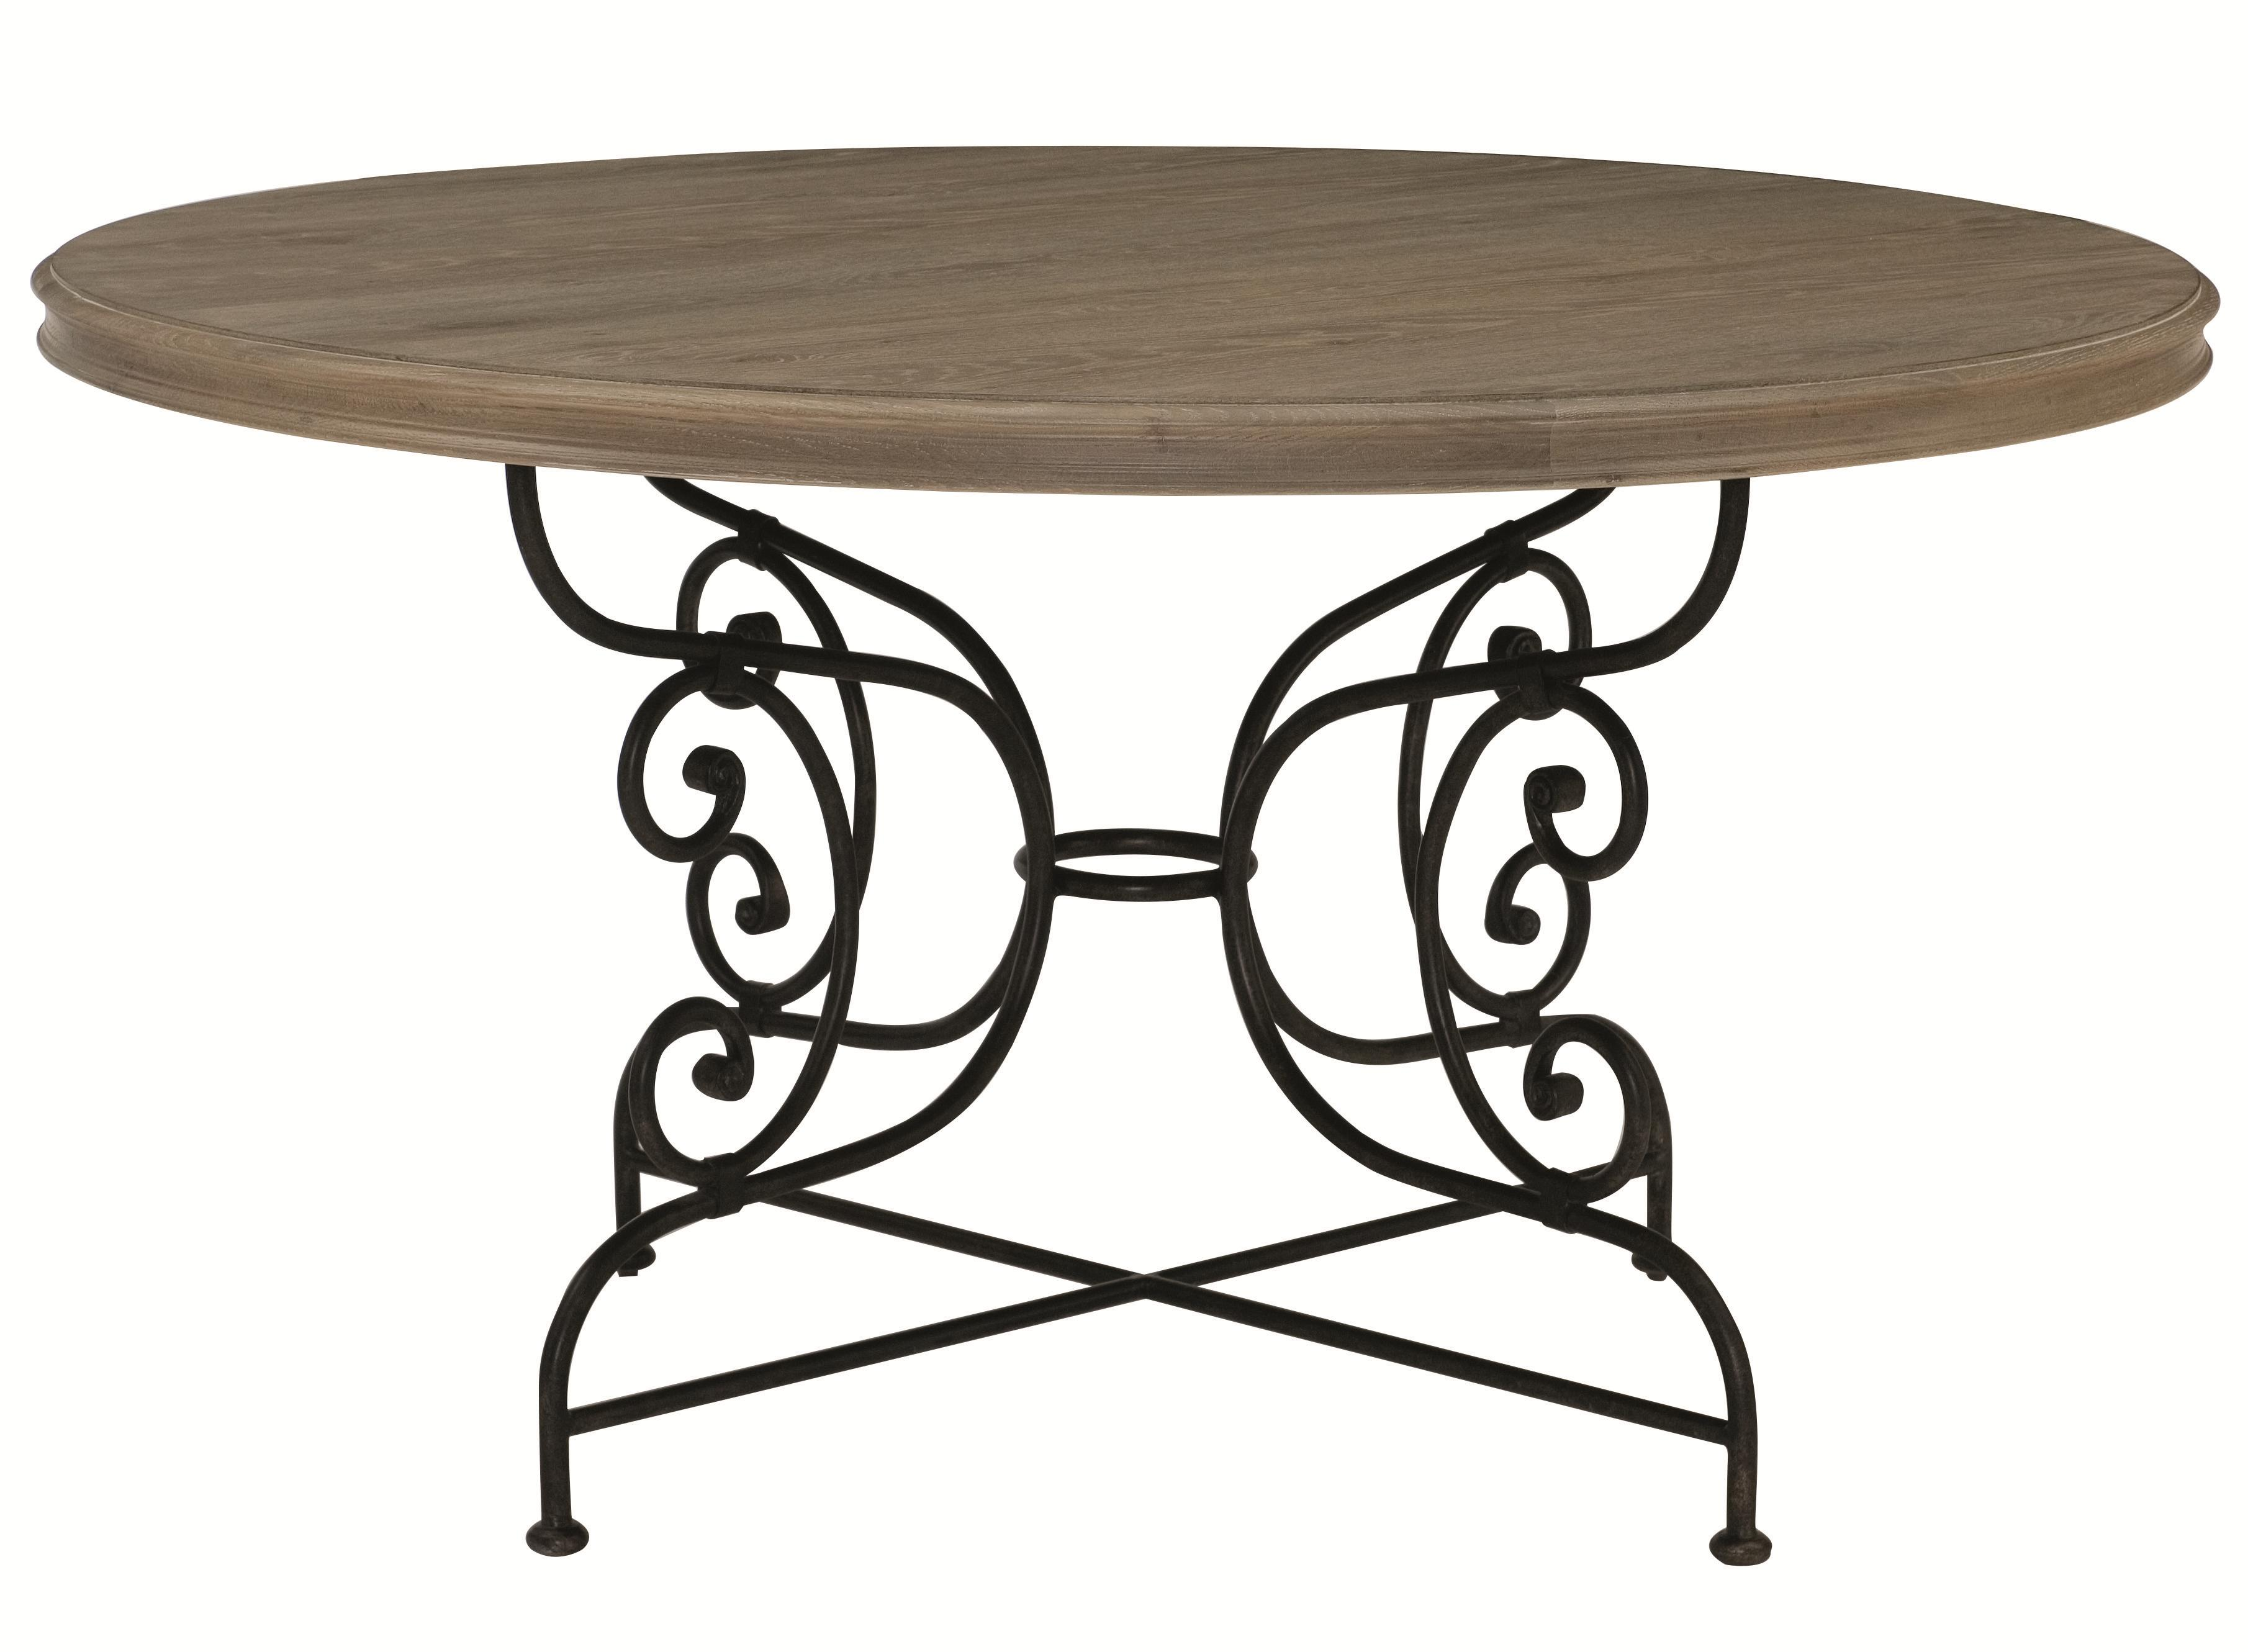 Auberge Round Dining Table with Metal Base at Williams & Kay